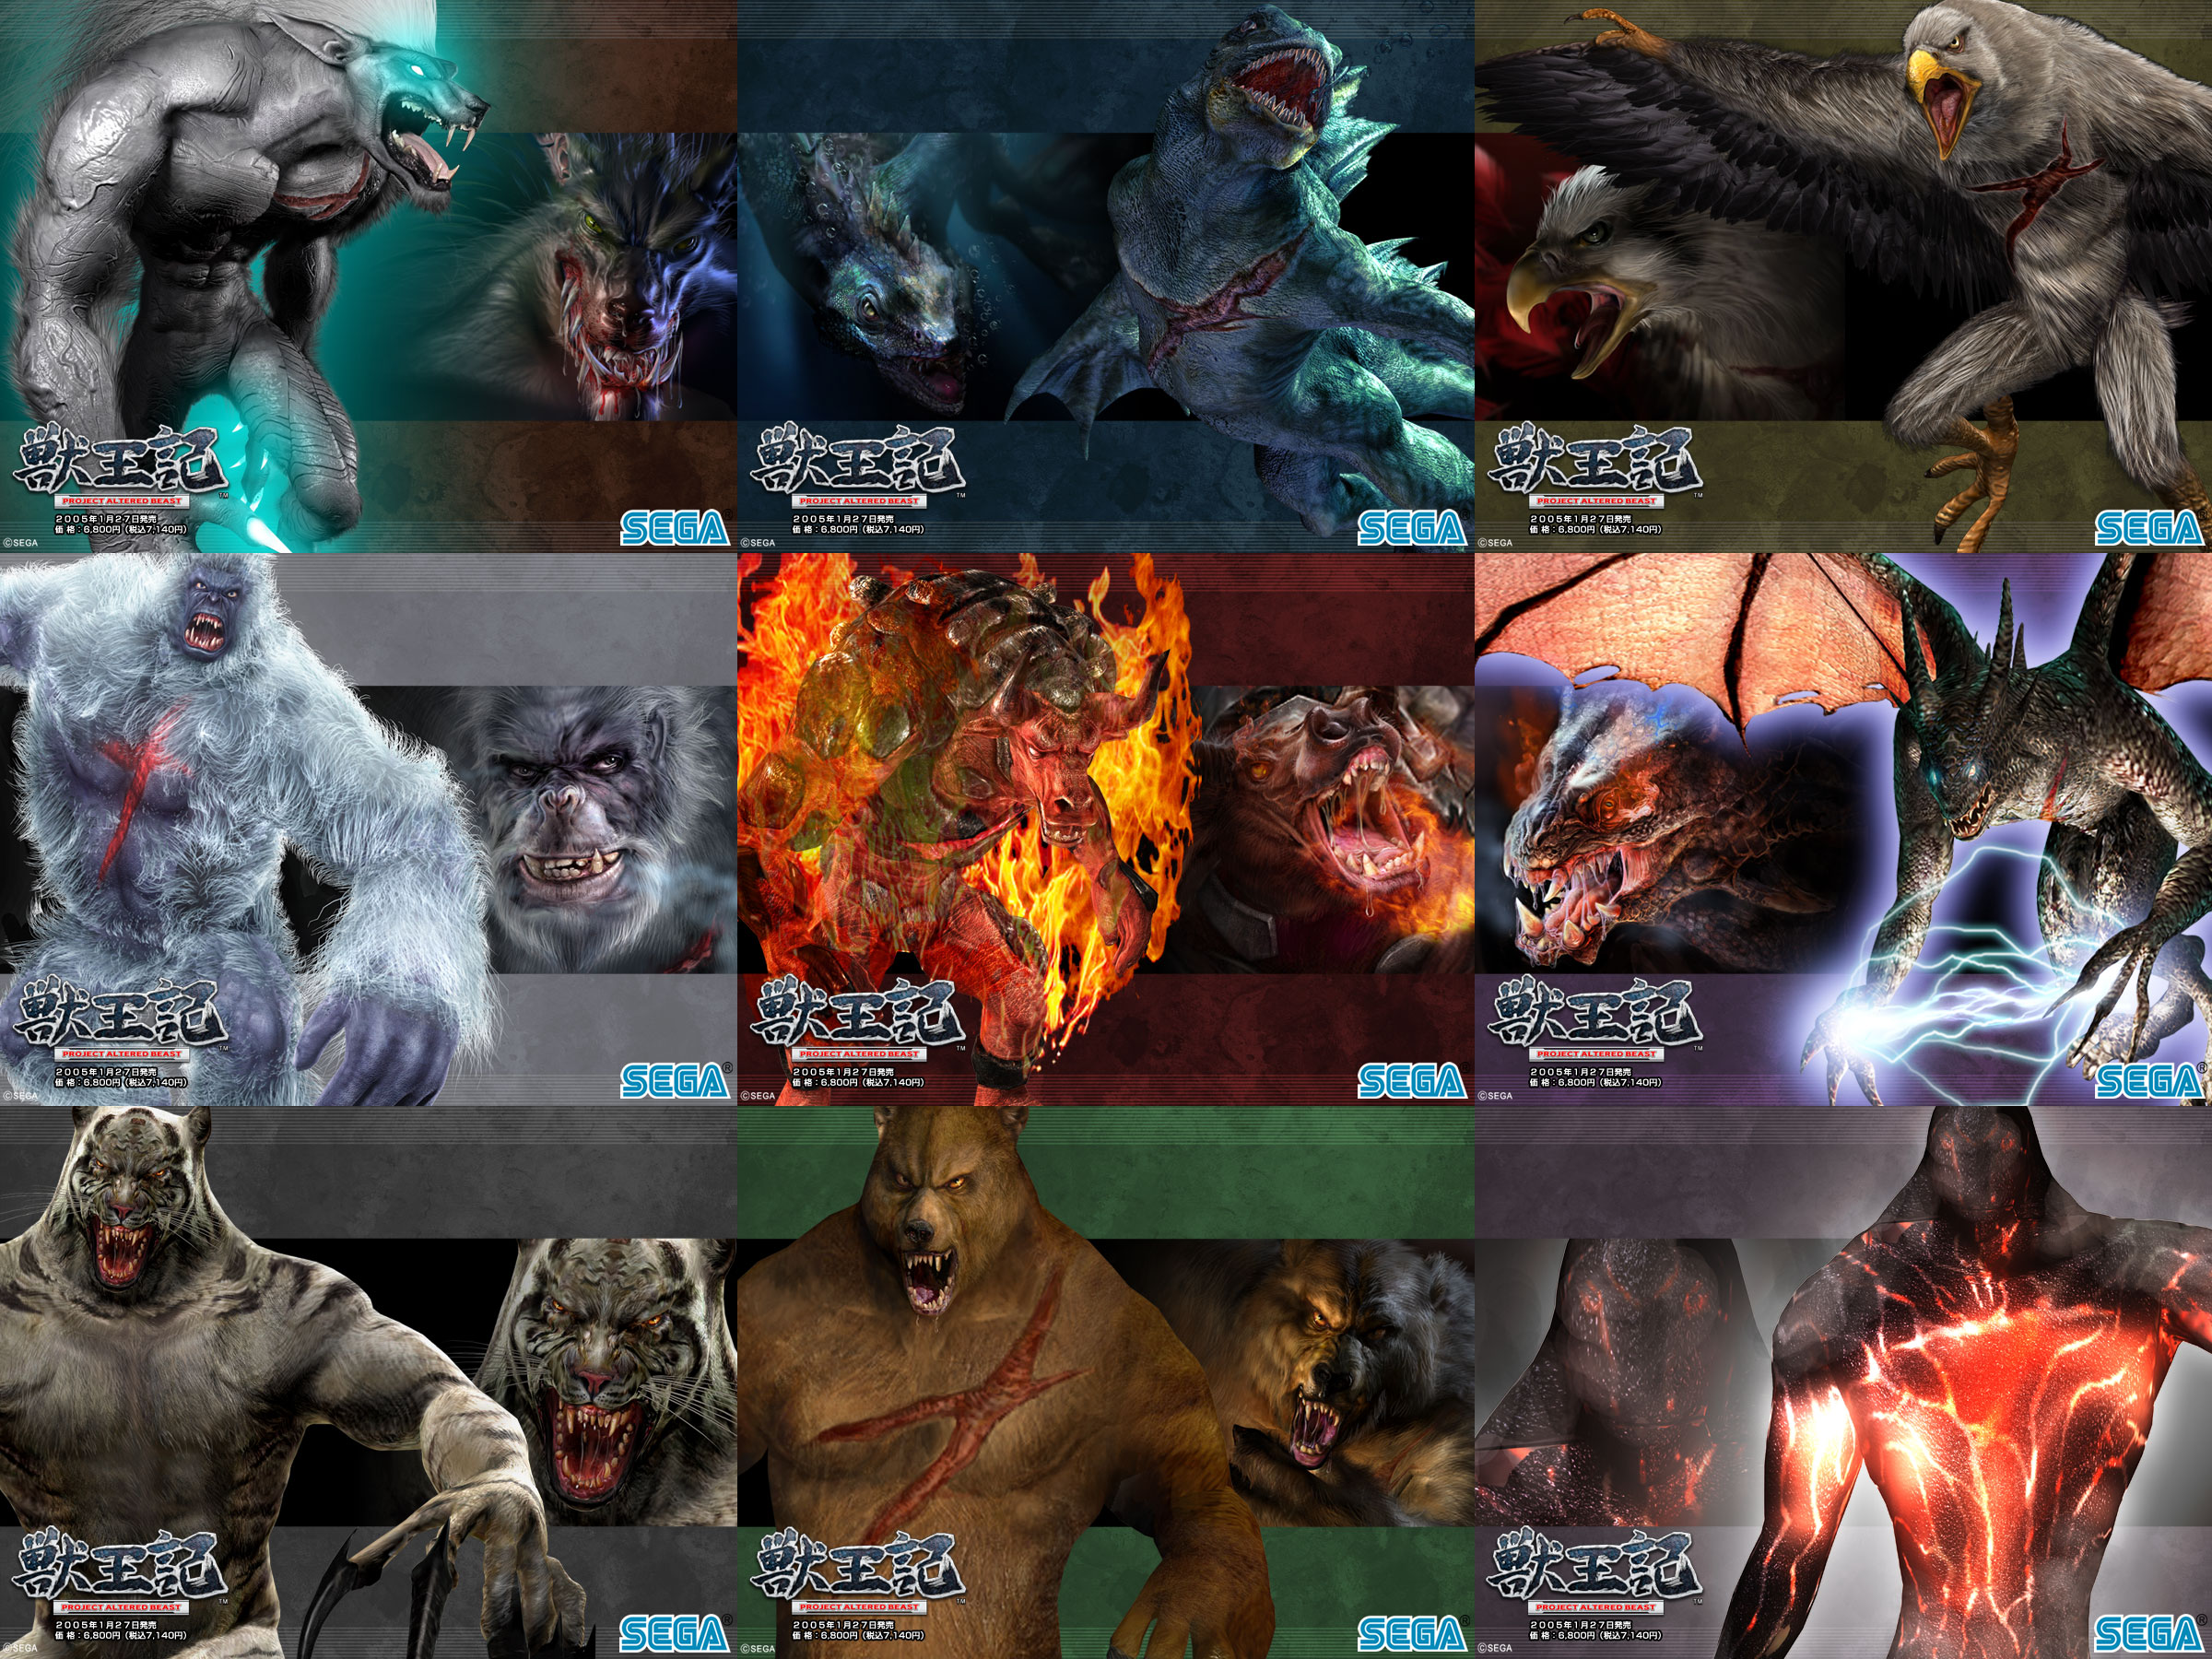 Project altered beast by prehistoricjack on deviantart for Altered beast